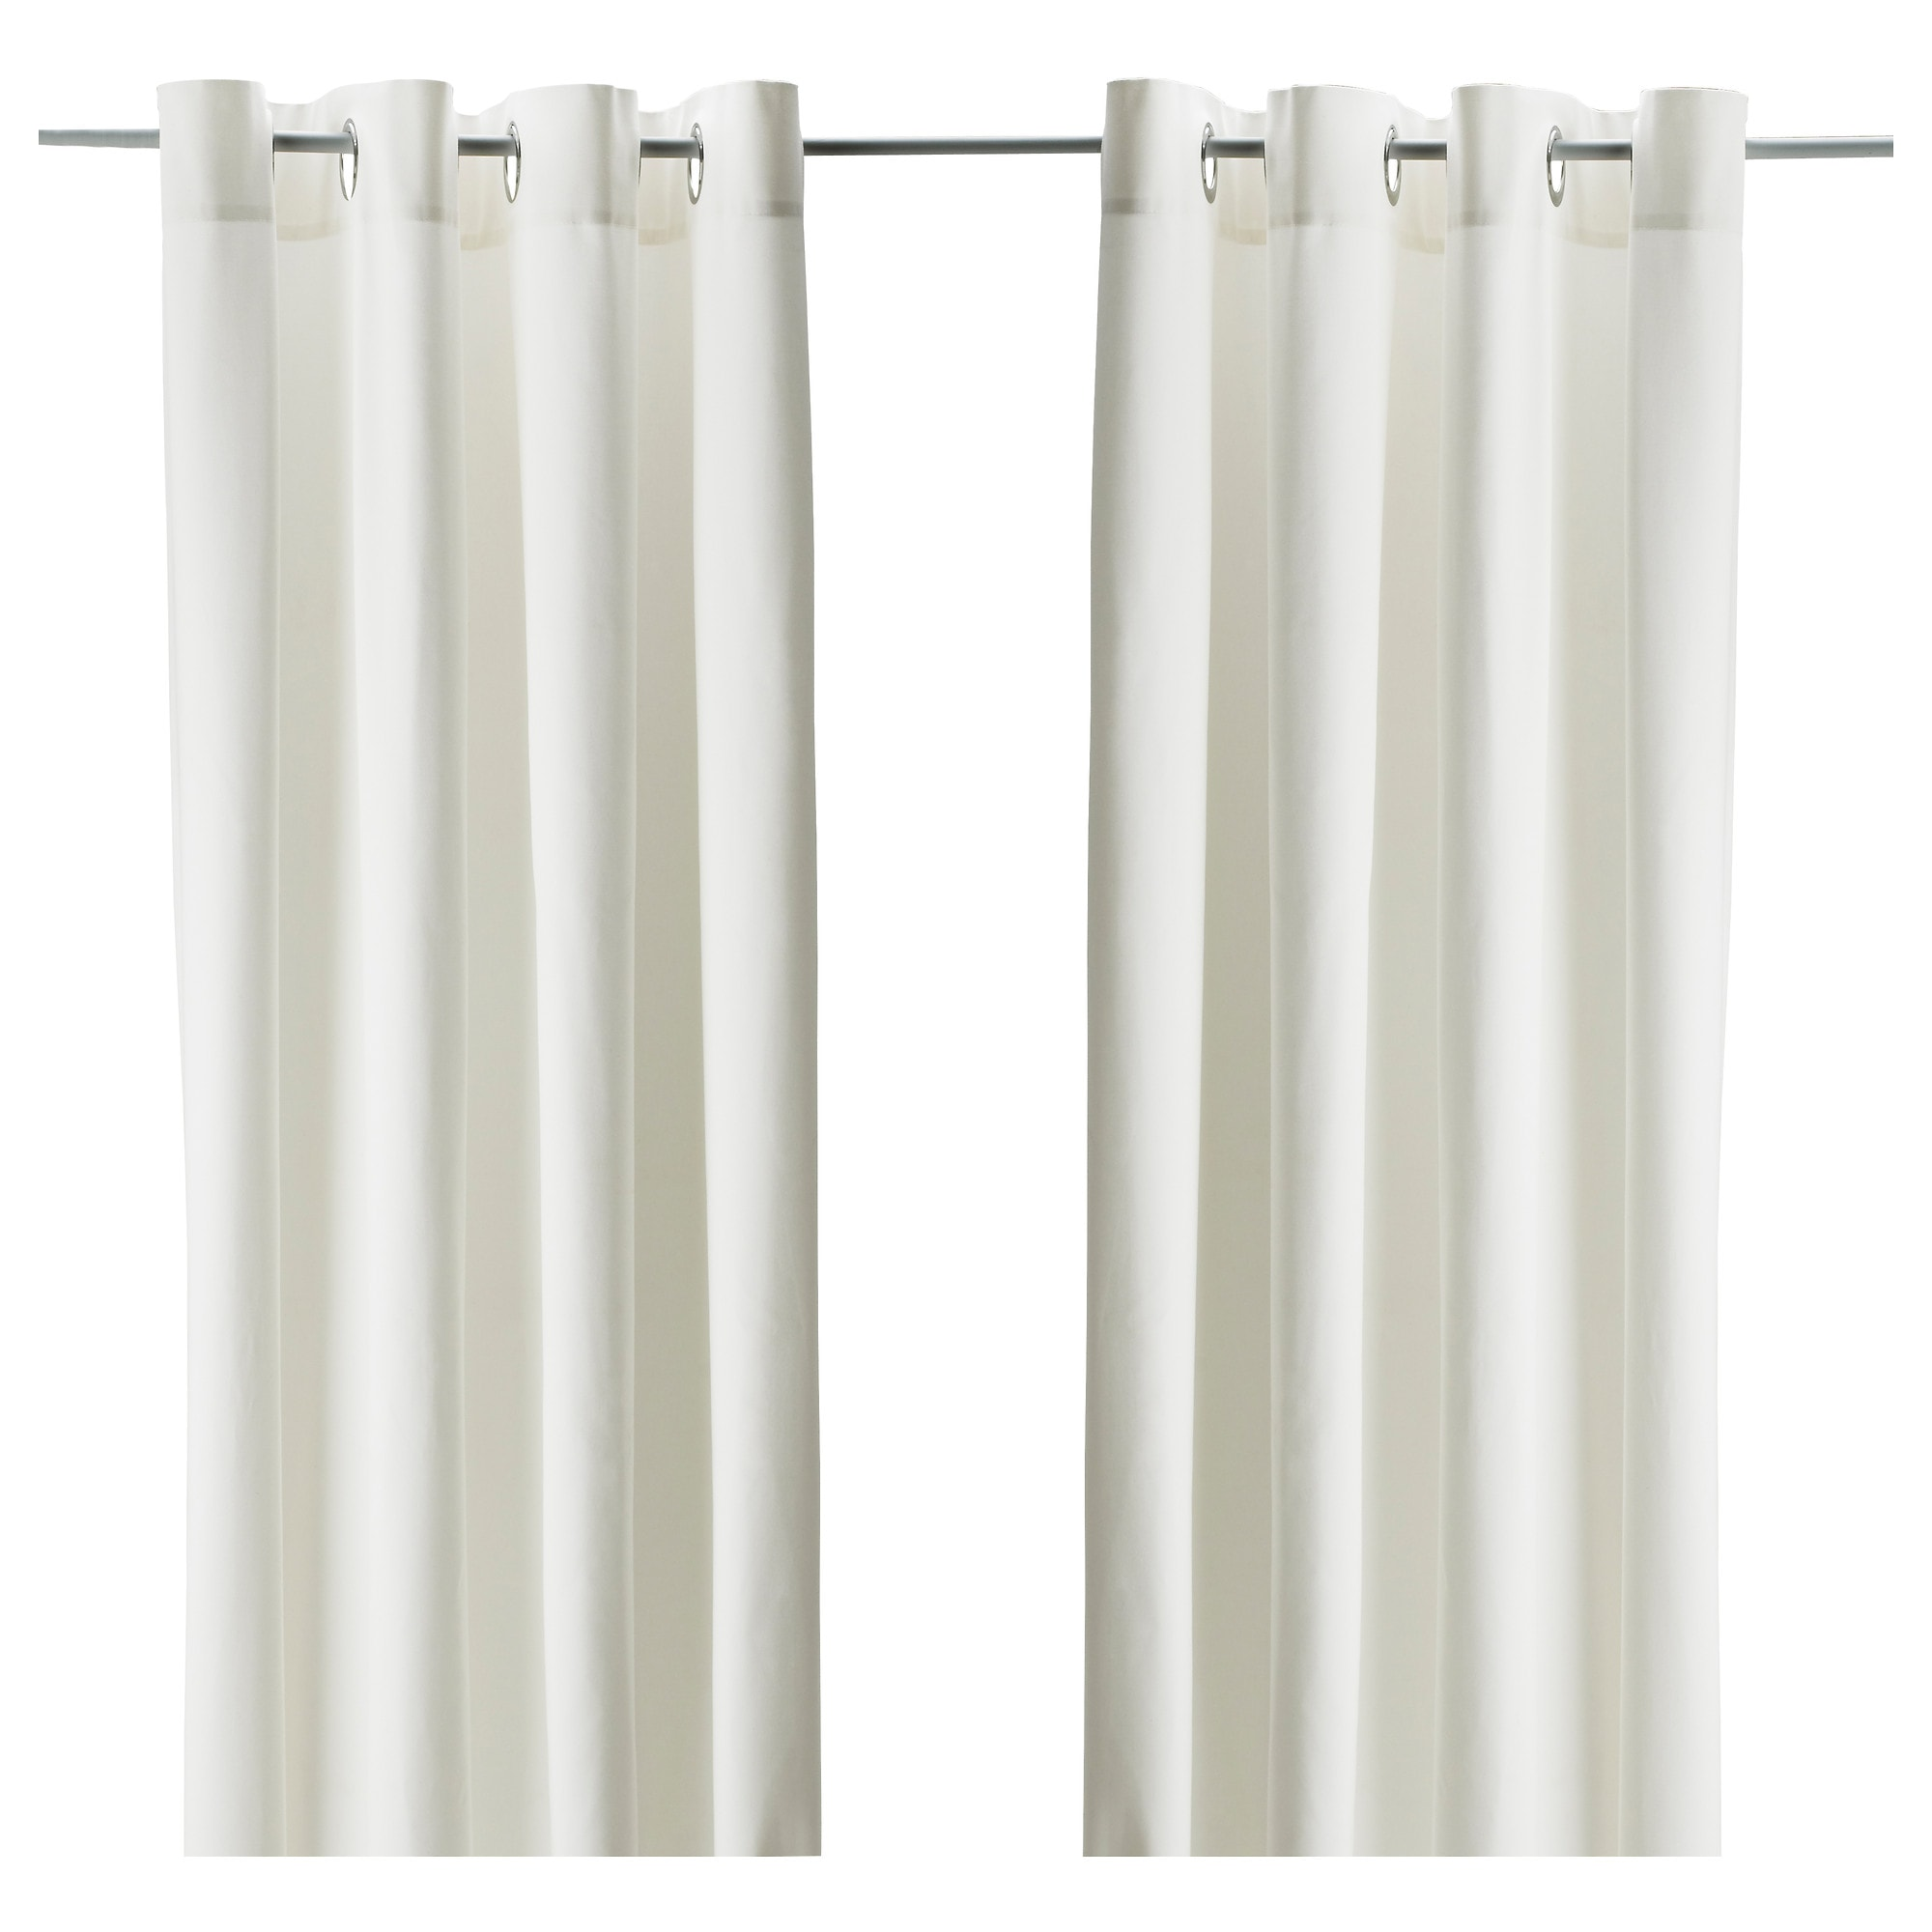 Curtains Merete Curtains 1 Pair 57x118 Ikea